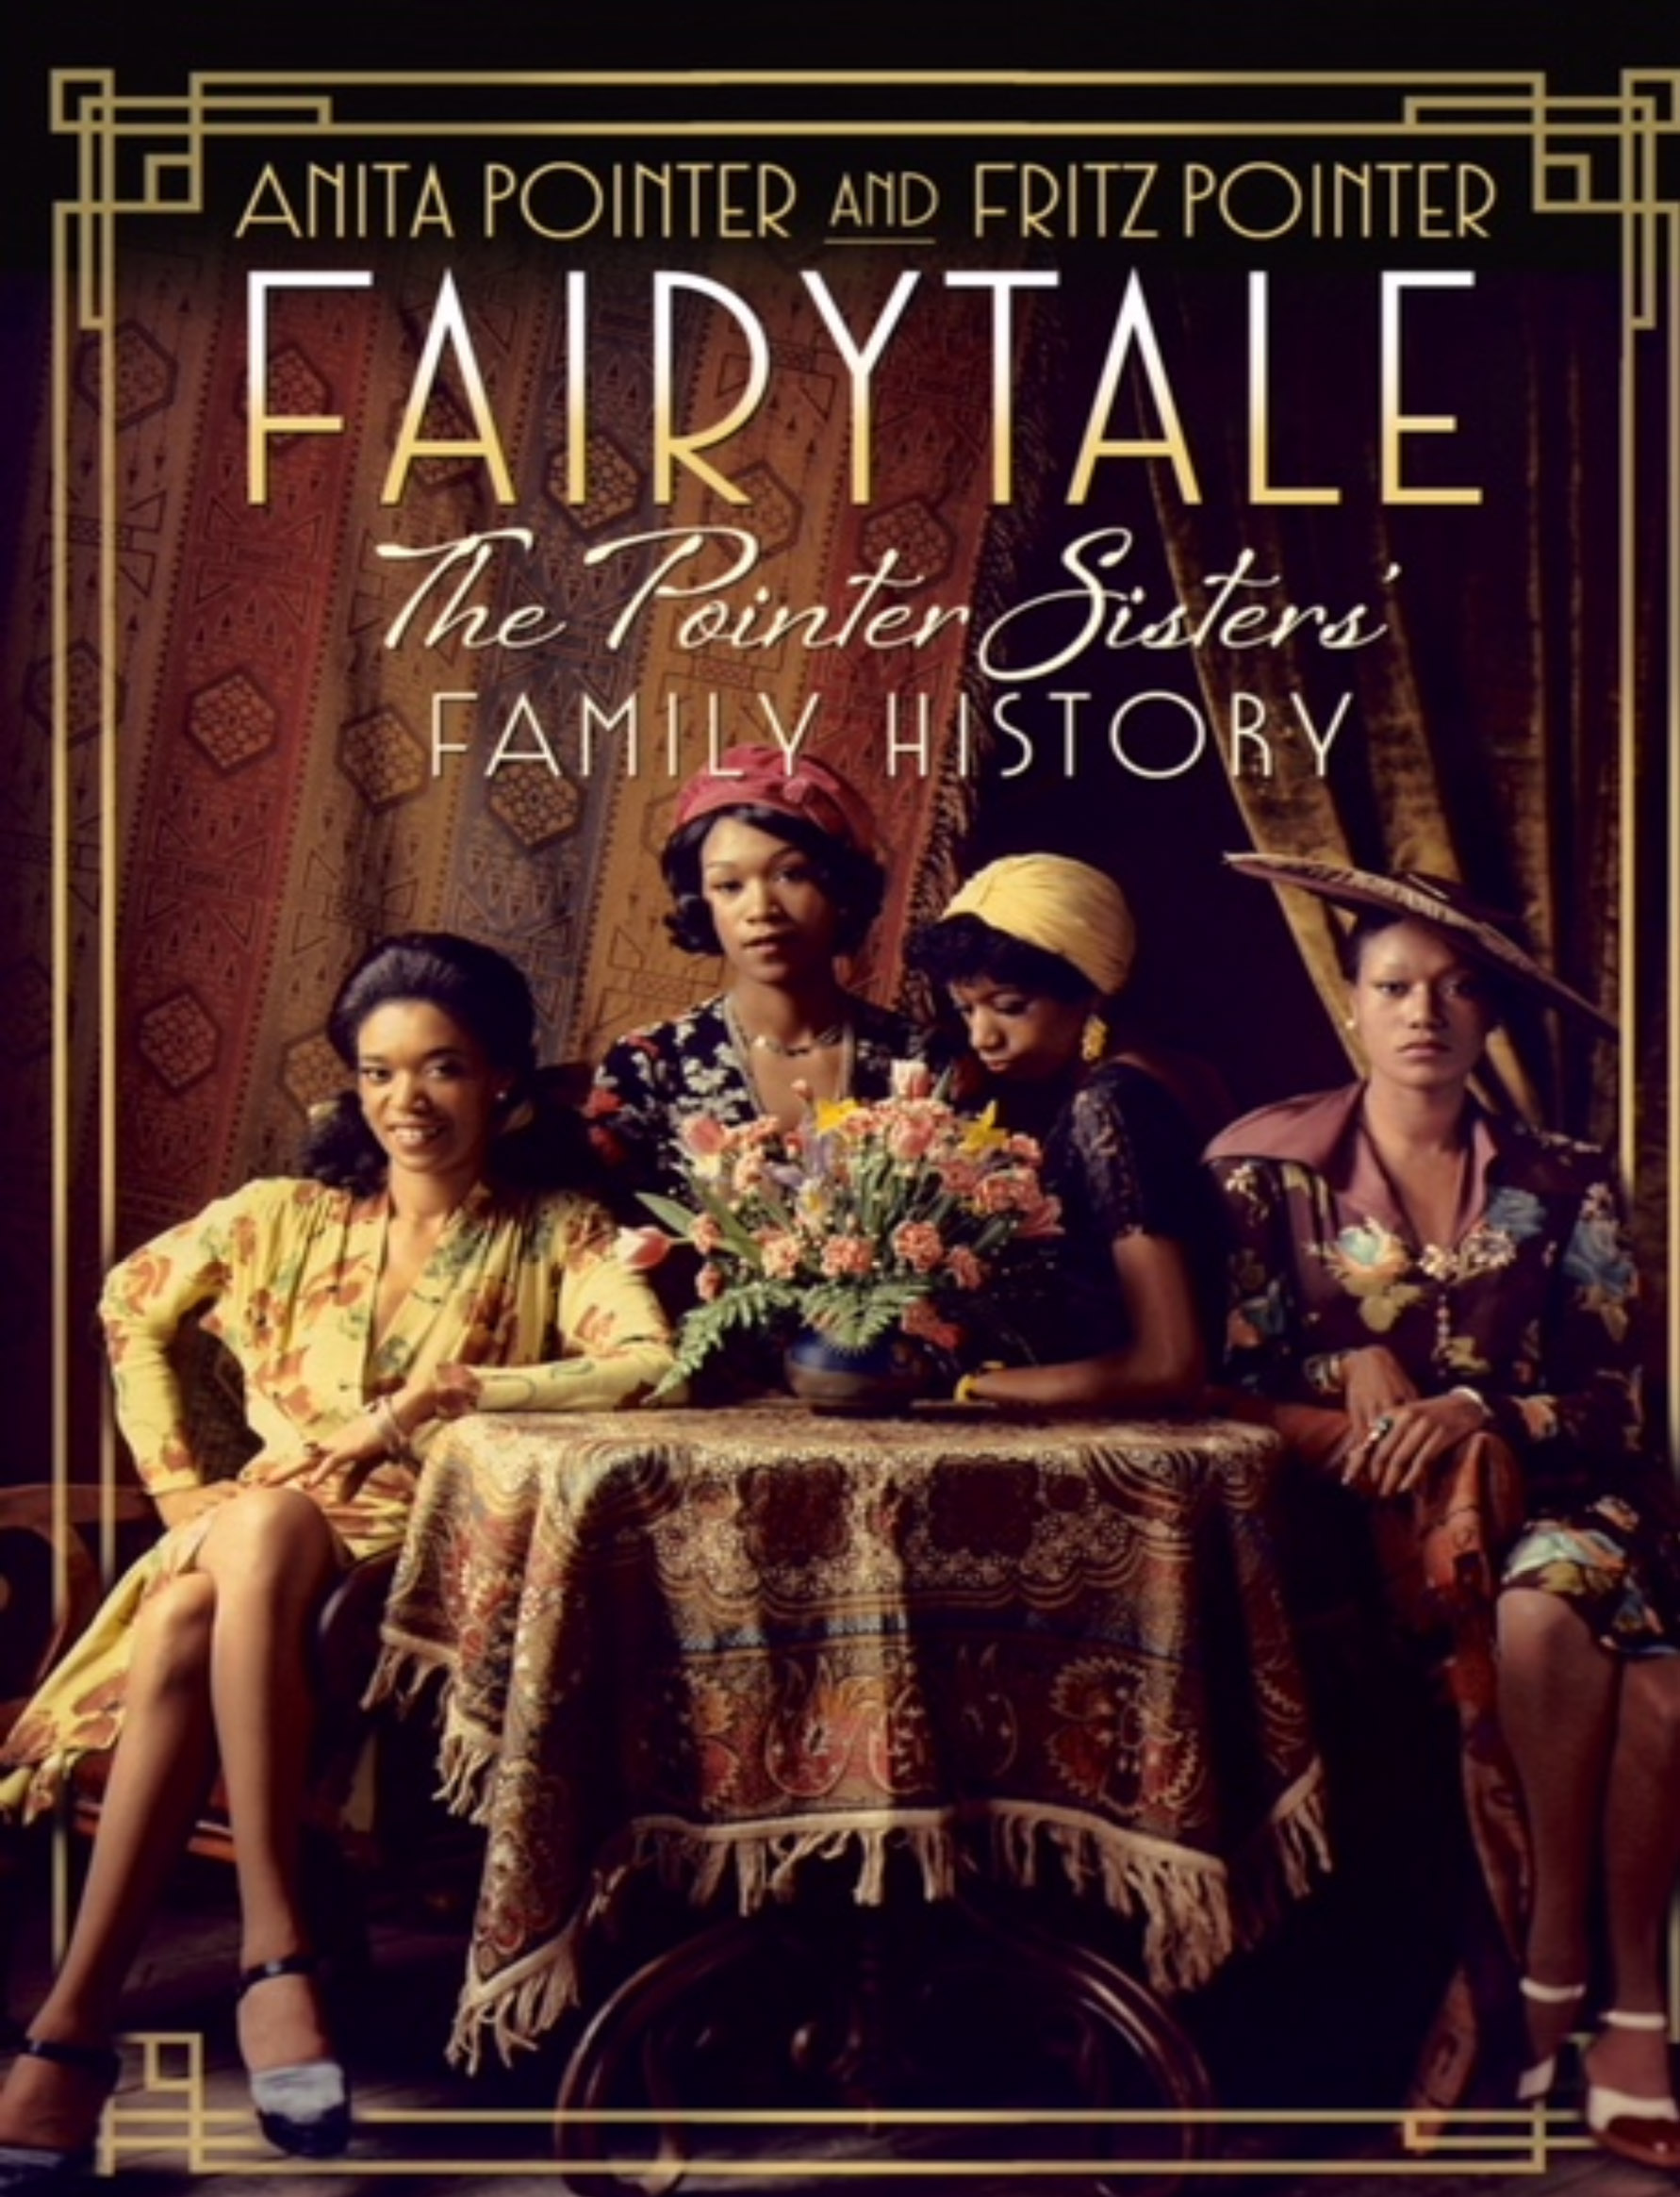 Fairytale, The Pointer Sisters' Family History, by Anita and Fritz Pointer